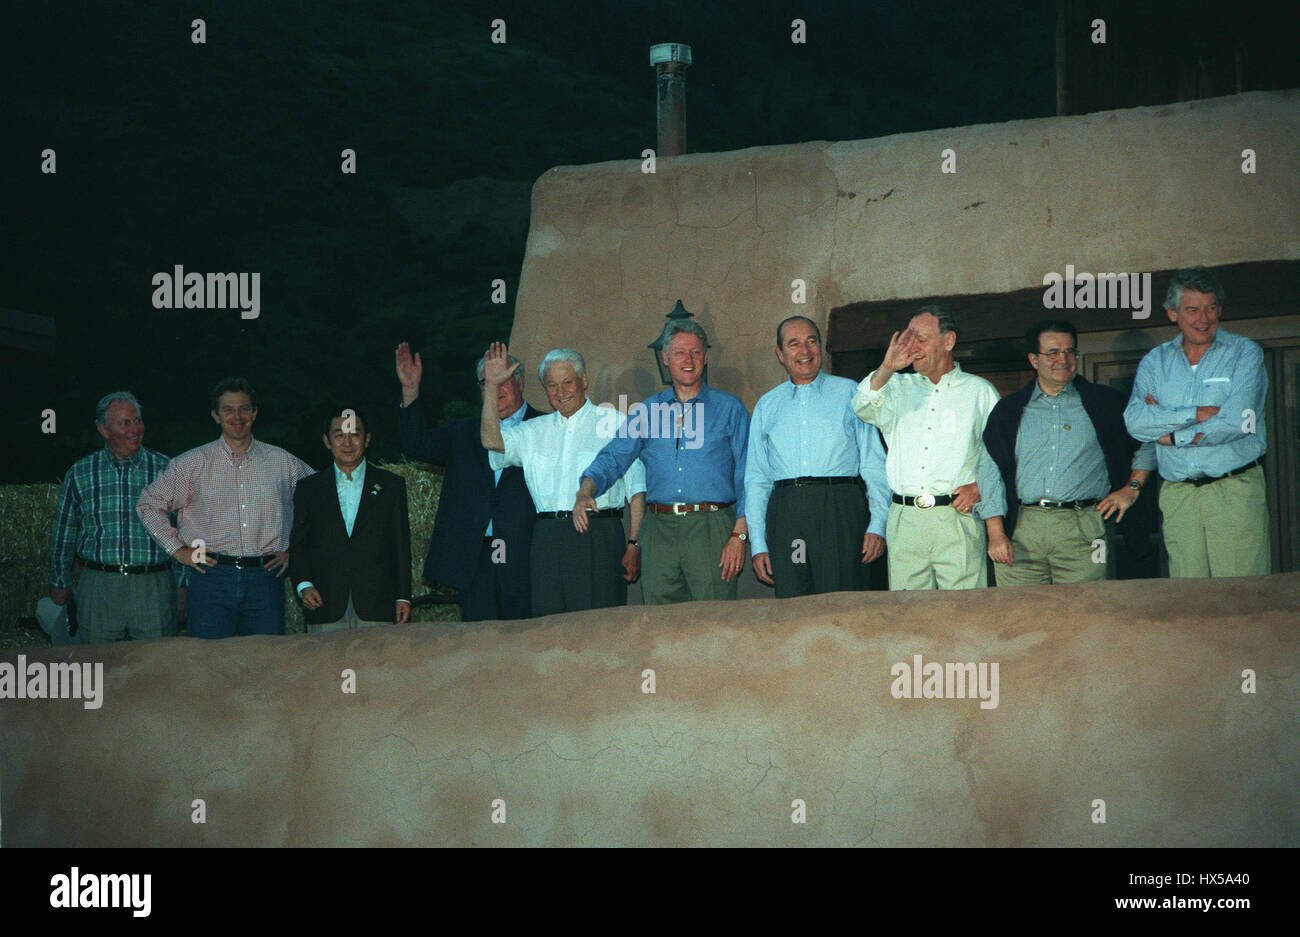 DENVER SUMMIT OF THE EIGHT GROUP PHOTO OF LEADERS 17 July 1997 - Stock Image